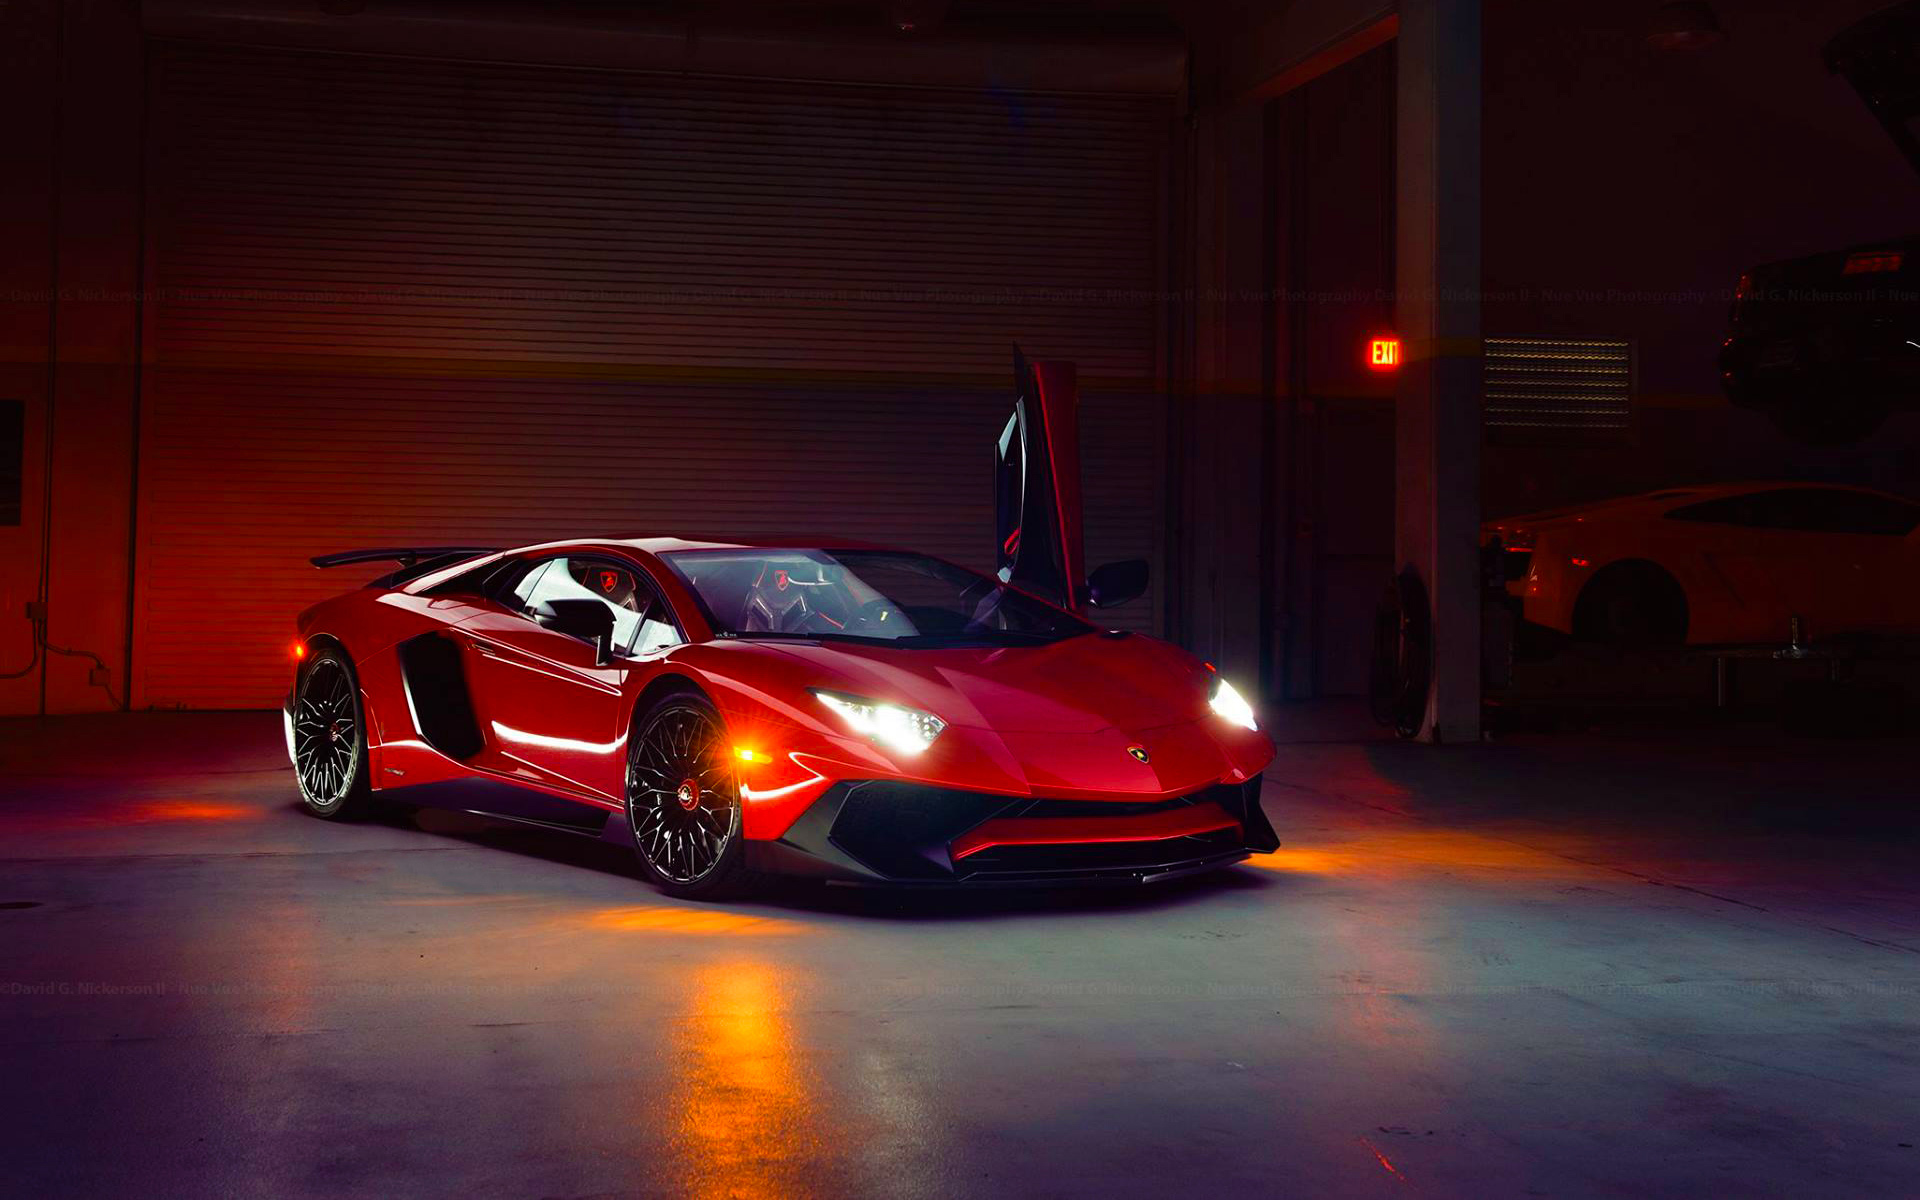 Lamborghini Desktop Hd Wallpaper 59990 1920x1200px